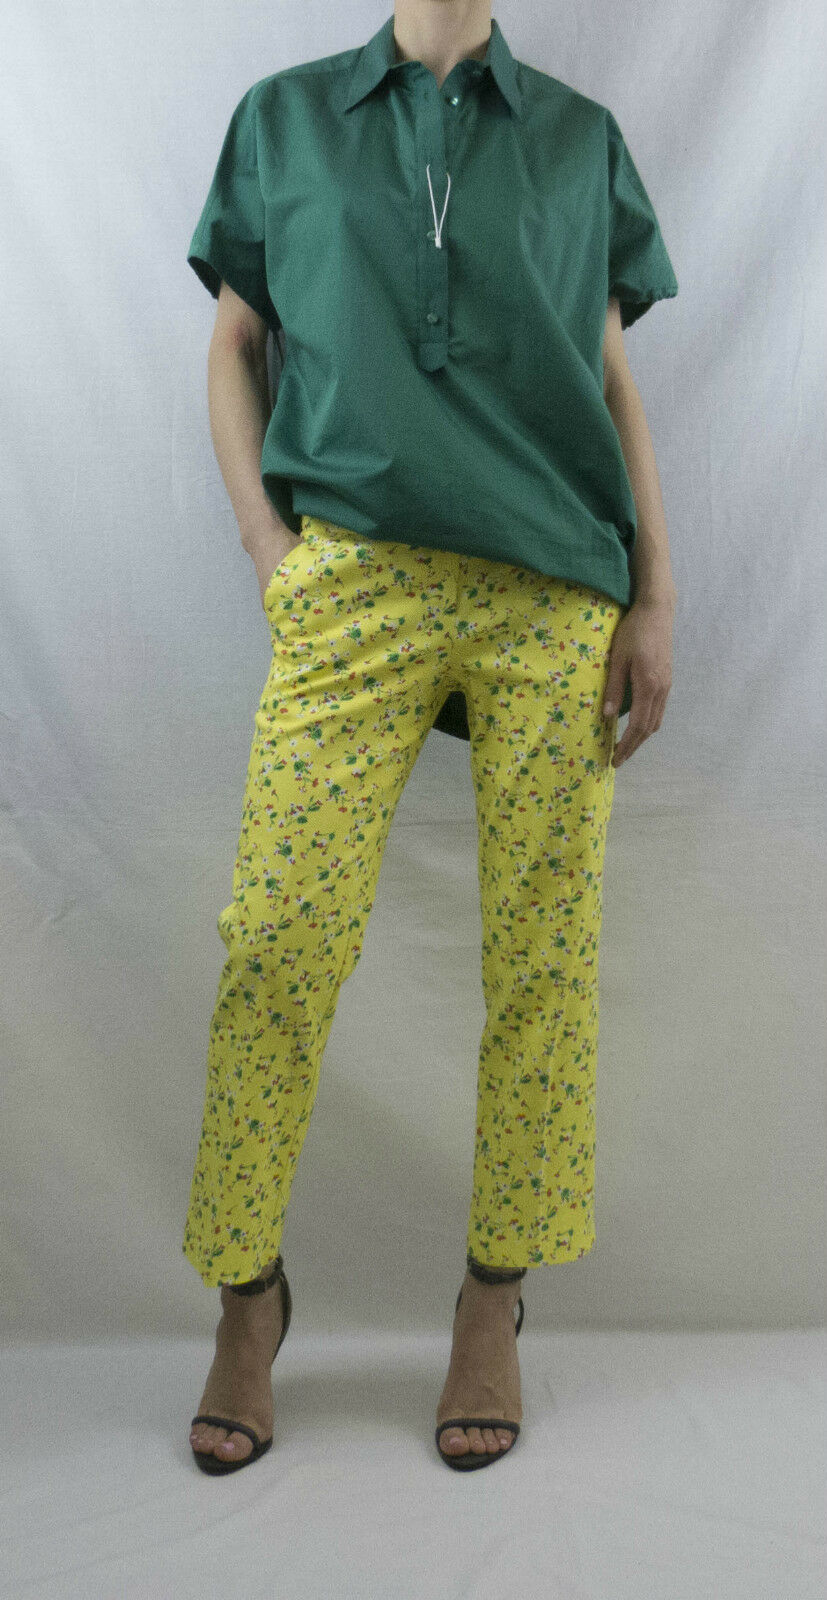 Pantalone Pants by Max Mara Tg.I 40, CH 36,USA 4, F B38, MEX 28, GB8